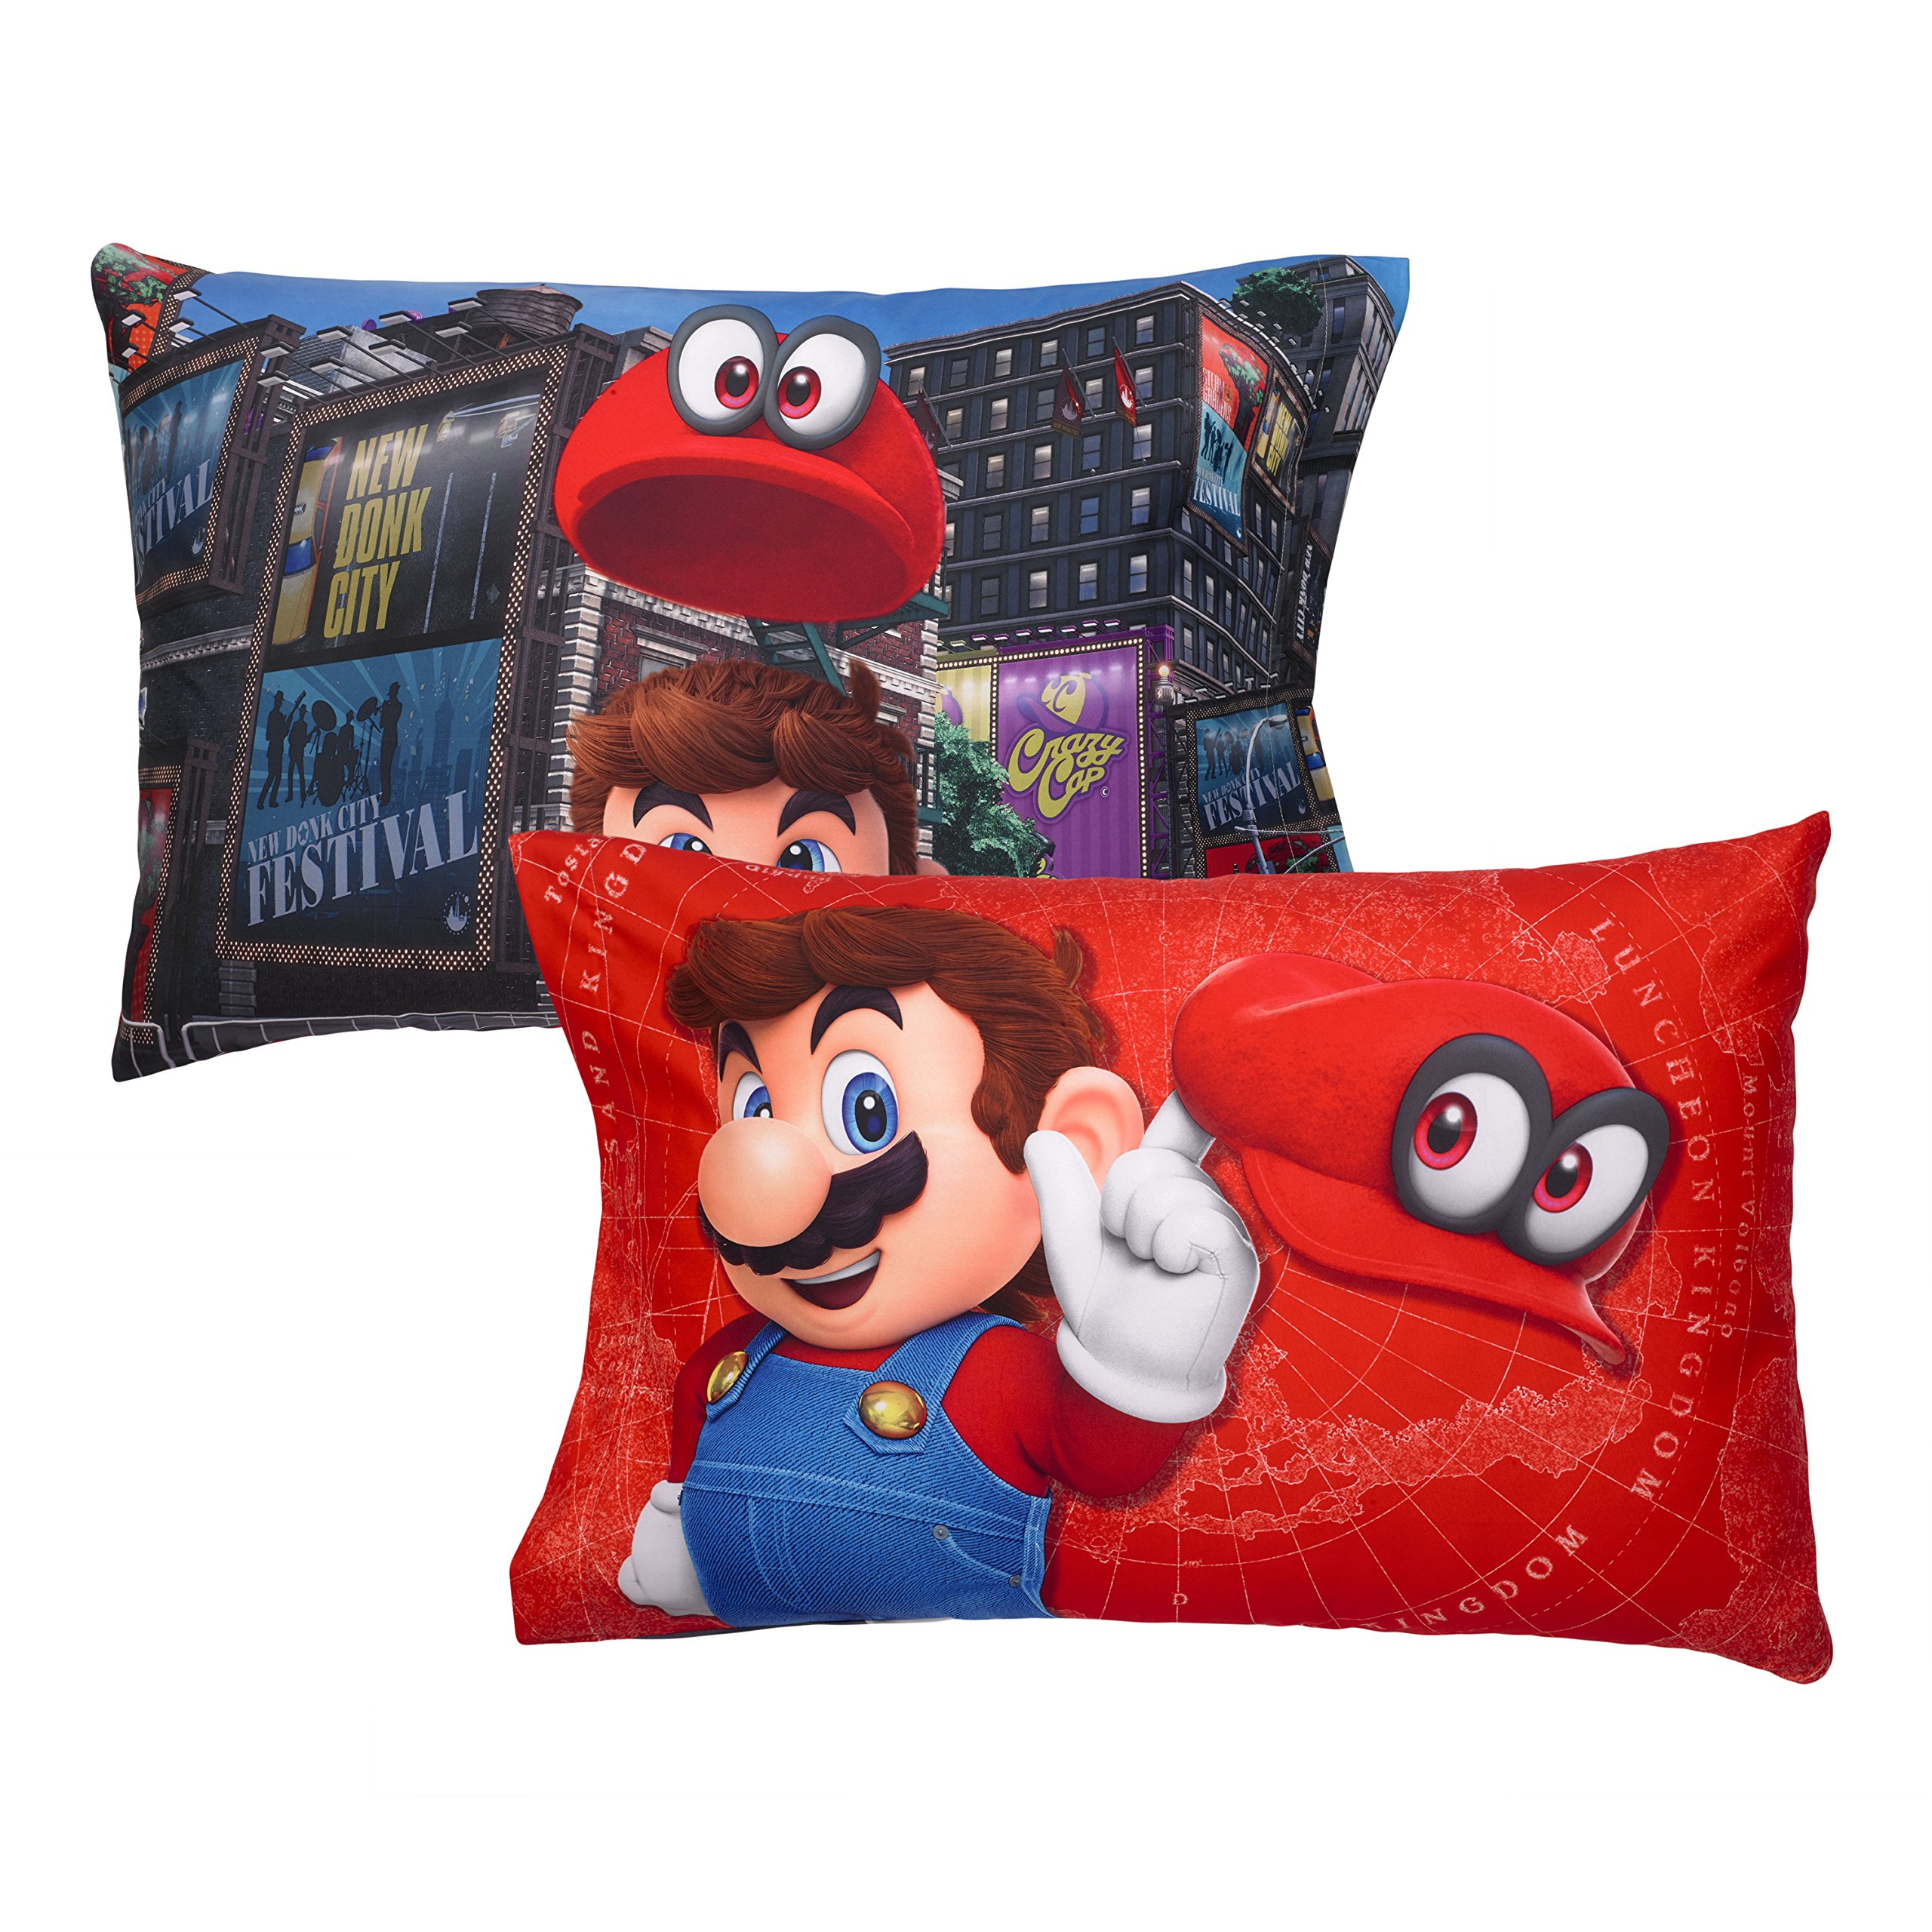 A&L 4 Piece Kids Blue Super Mario Sheet Set Full, Red Oddyssey Bedding Video Games Bed Sheets Tanks Hats Buildings Fun Bright Bold Soft Cozy Comfortable Yellow Green Brown Durable, Polyester